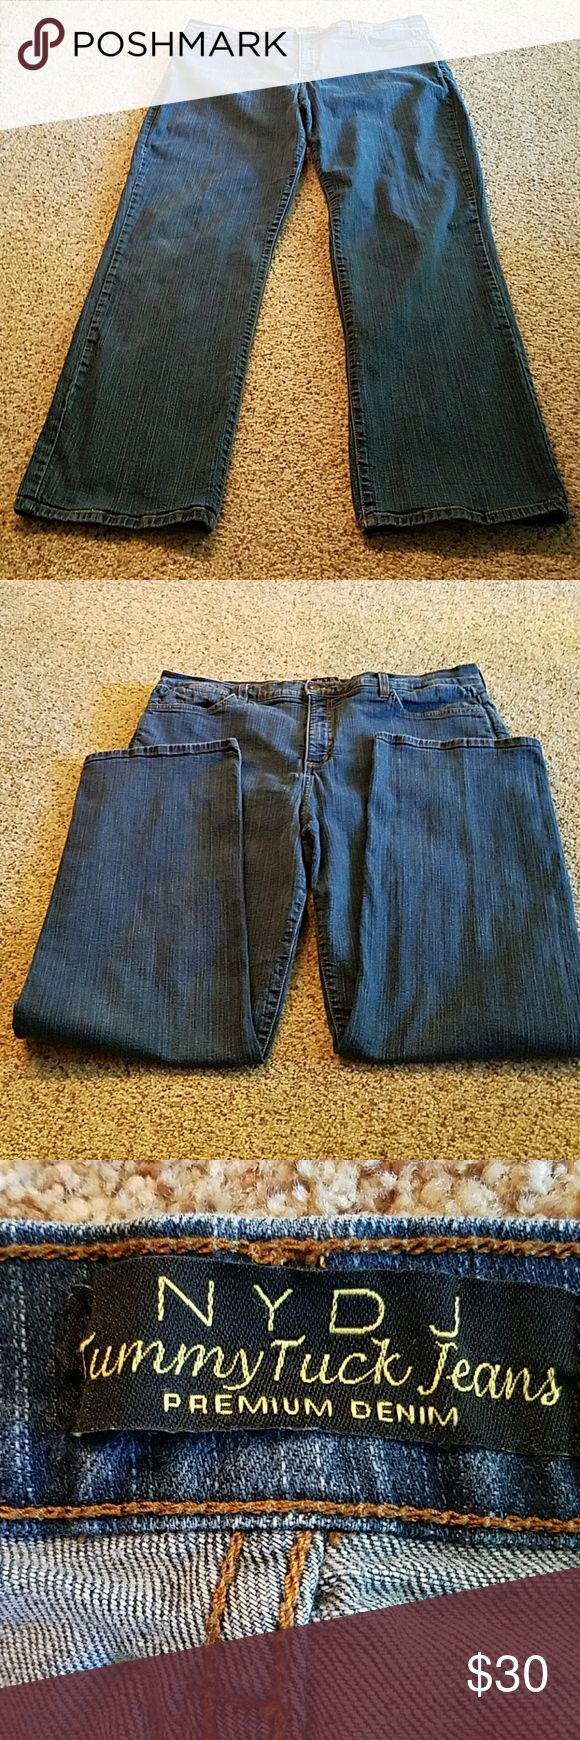 Price drop! NYDJ Tummy Tuck Premium jeans, 20W NYDJ jeans, premium denim, tummy tuck. Preloved with minimal signs of wear back pockets and hems. Please review pictures. Size 20W. Waist approximately 19 inches across flat with stretch. Inseam approximately 32 inches.  Front rise approximately 13 inches, back rise approximately 18 inches. No significant defects. NYDJ  Jeans